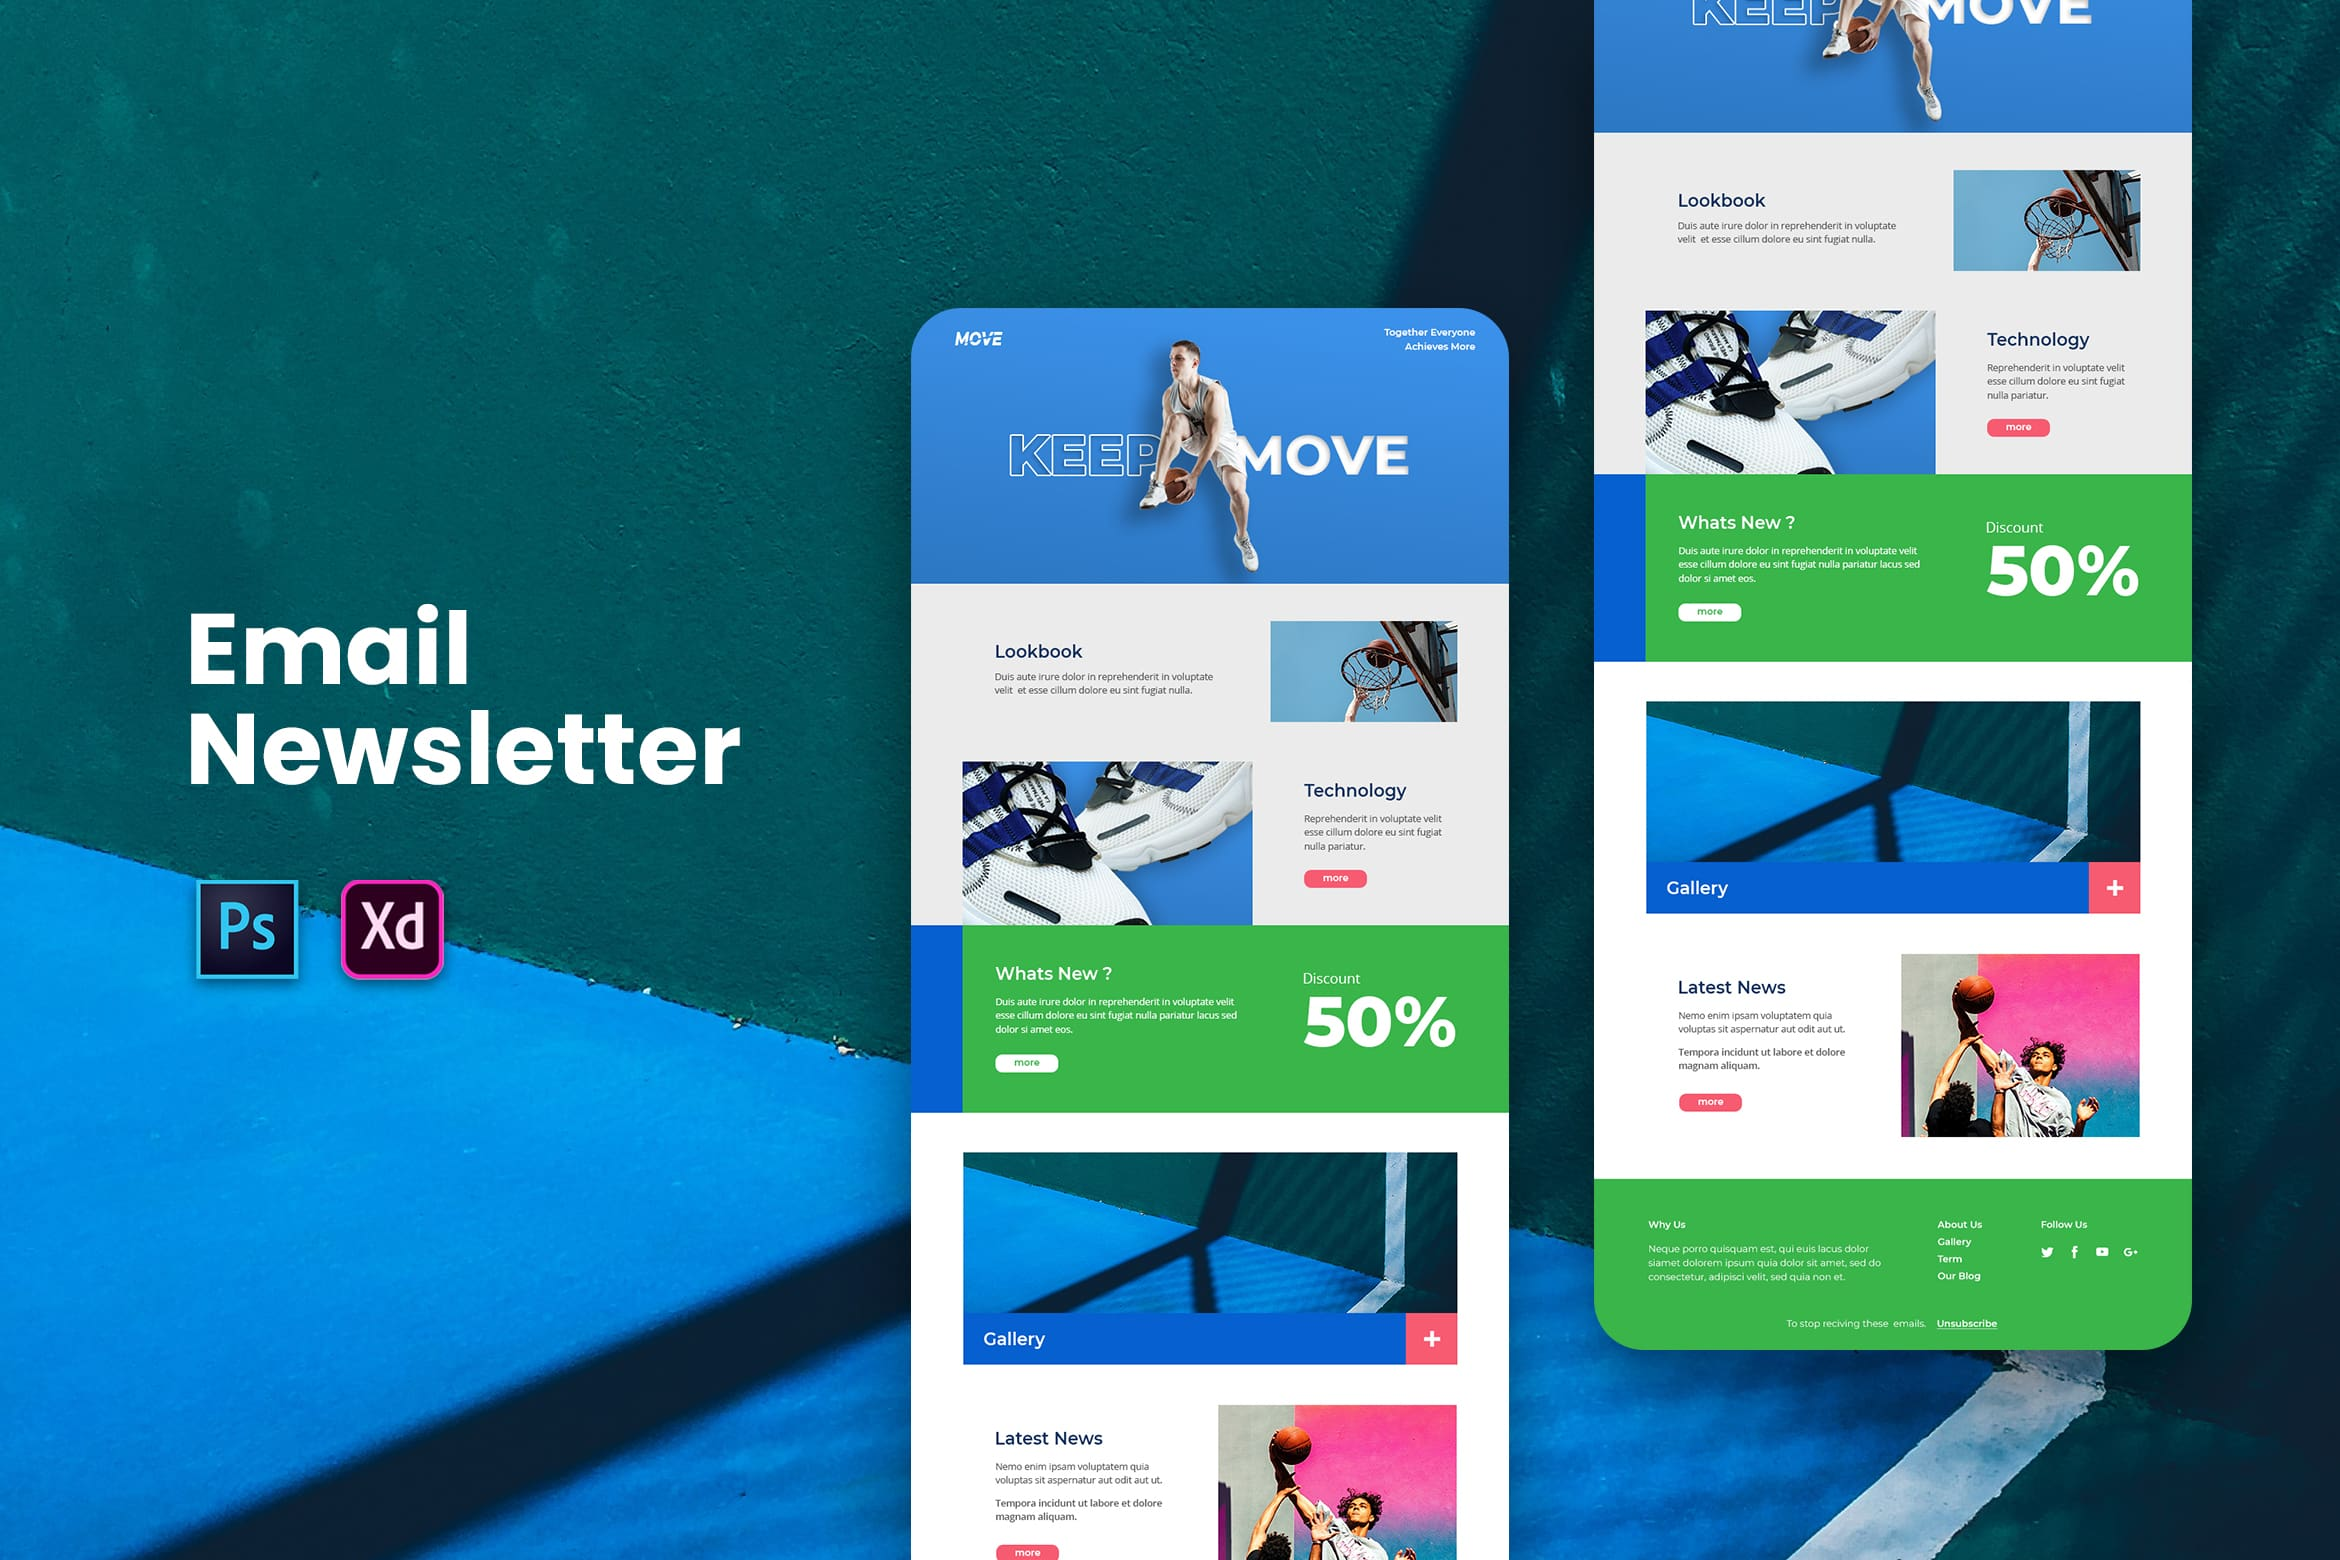 Sporty Shoes - Email Newsletter